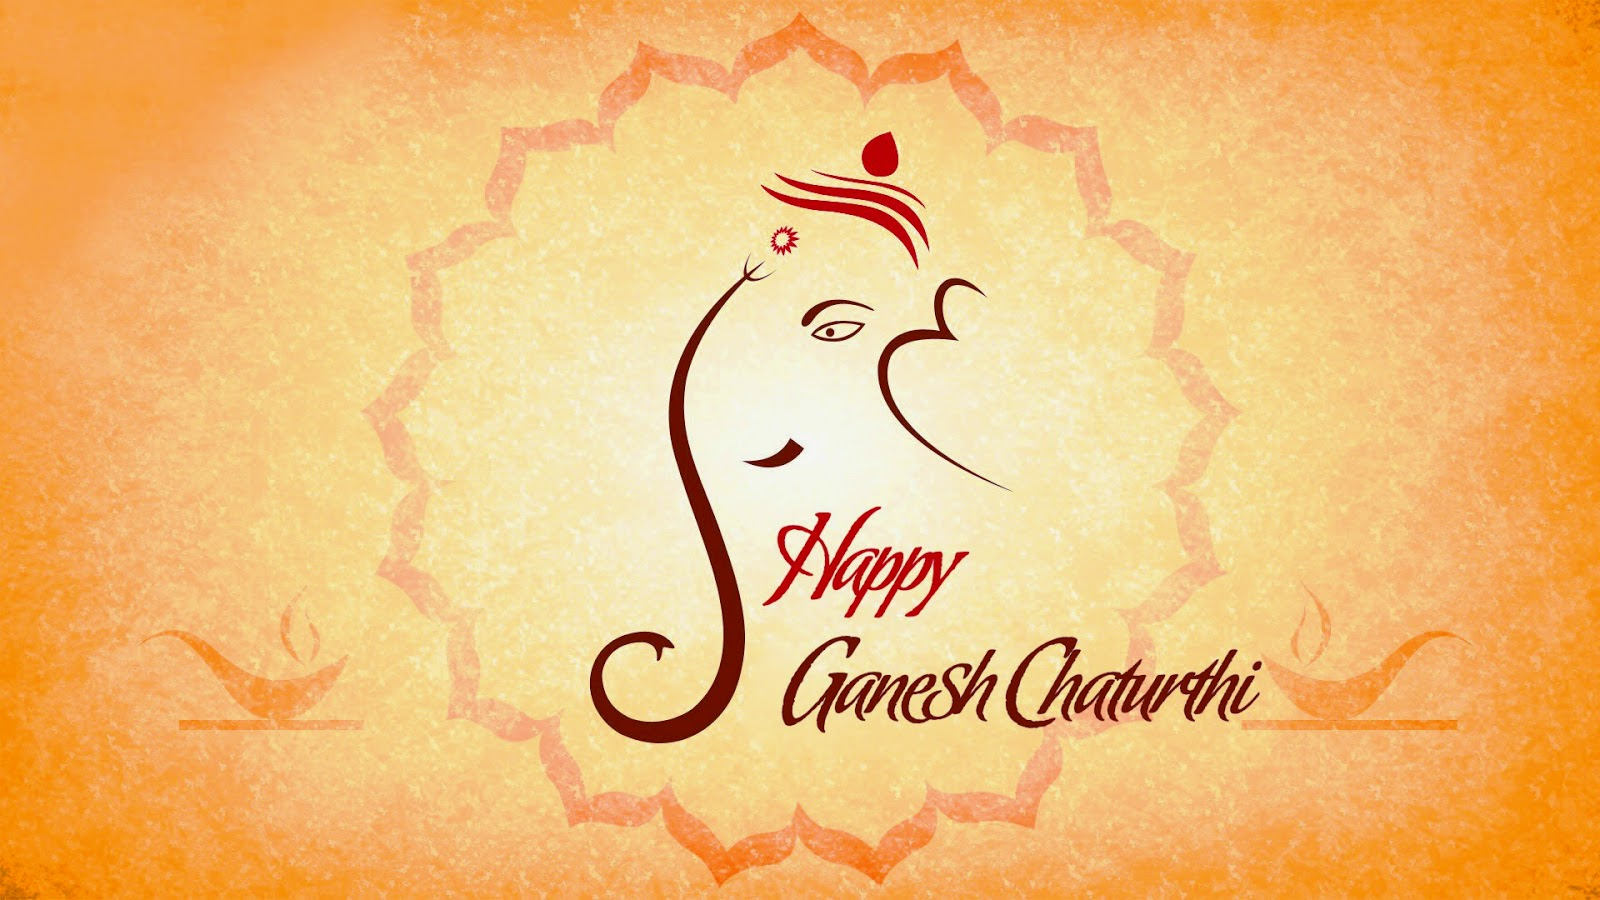 ������ happy ganesh chaturthi images and wallpapers 2016